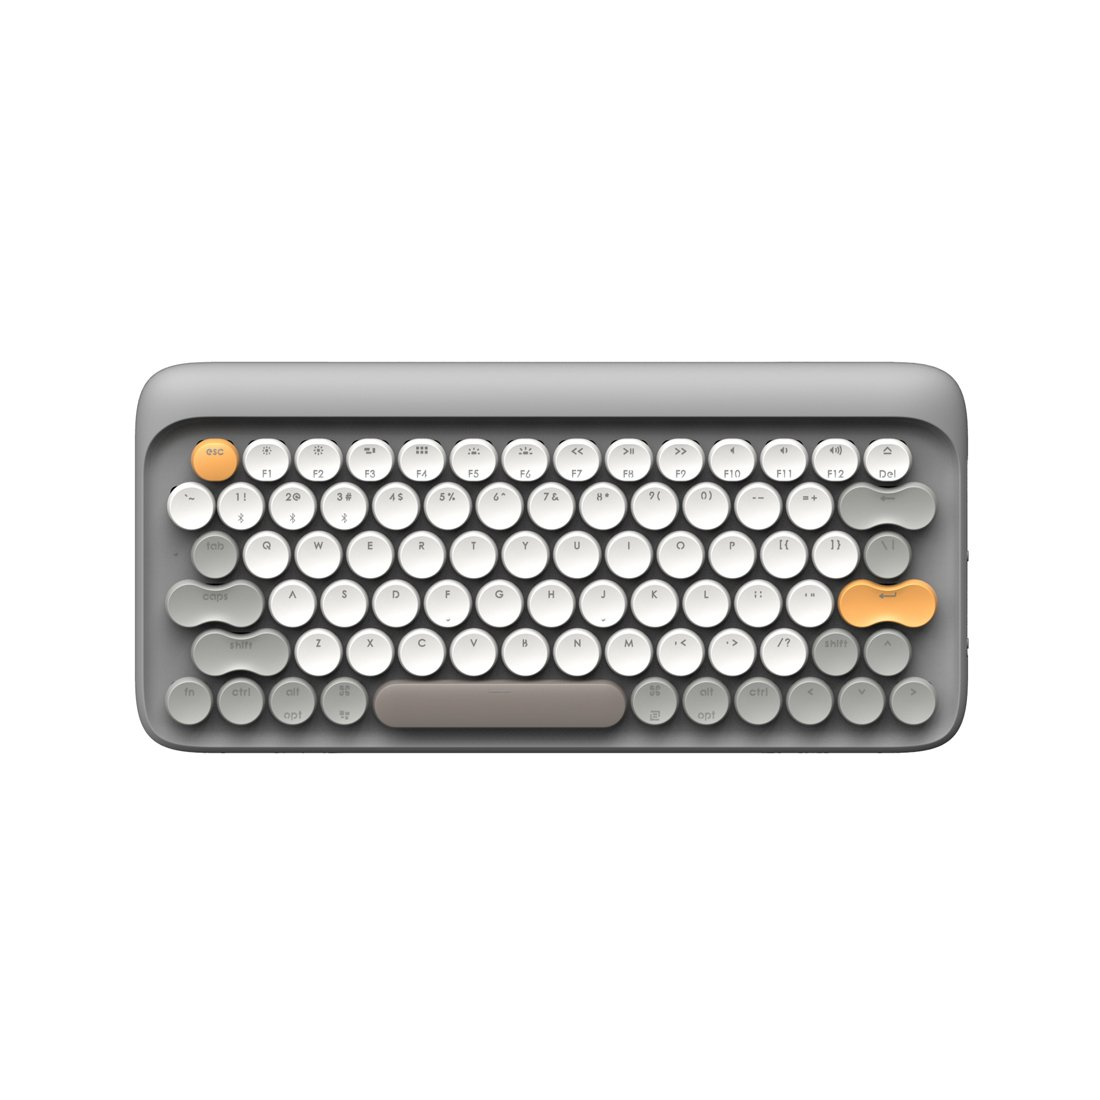 Bluetooth Mechanical Keyboard, LOFREE Four Season Wireless & USB Wired Keyboard with Gateron Blue Switch/White LED Backlit/Rechargeable Battery, Vintage Retro Keyboard for Mac, Android, Windows